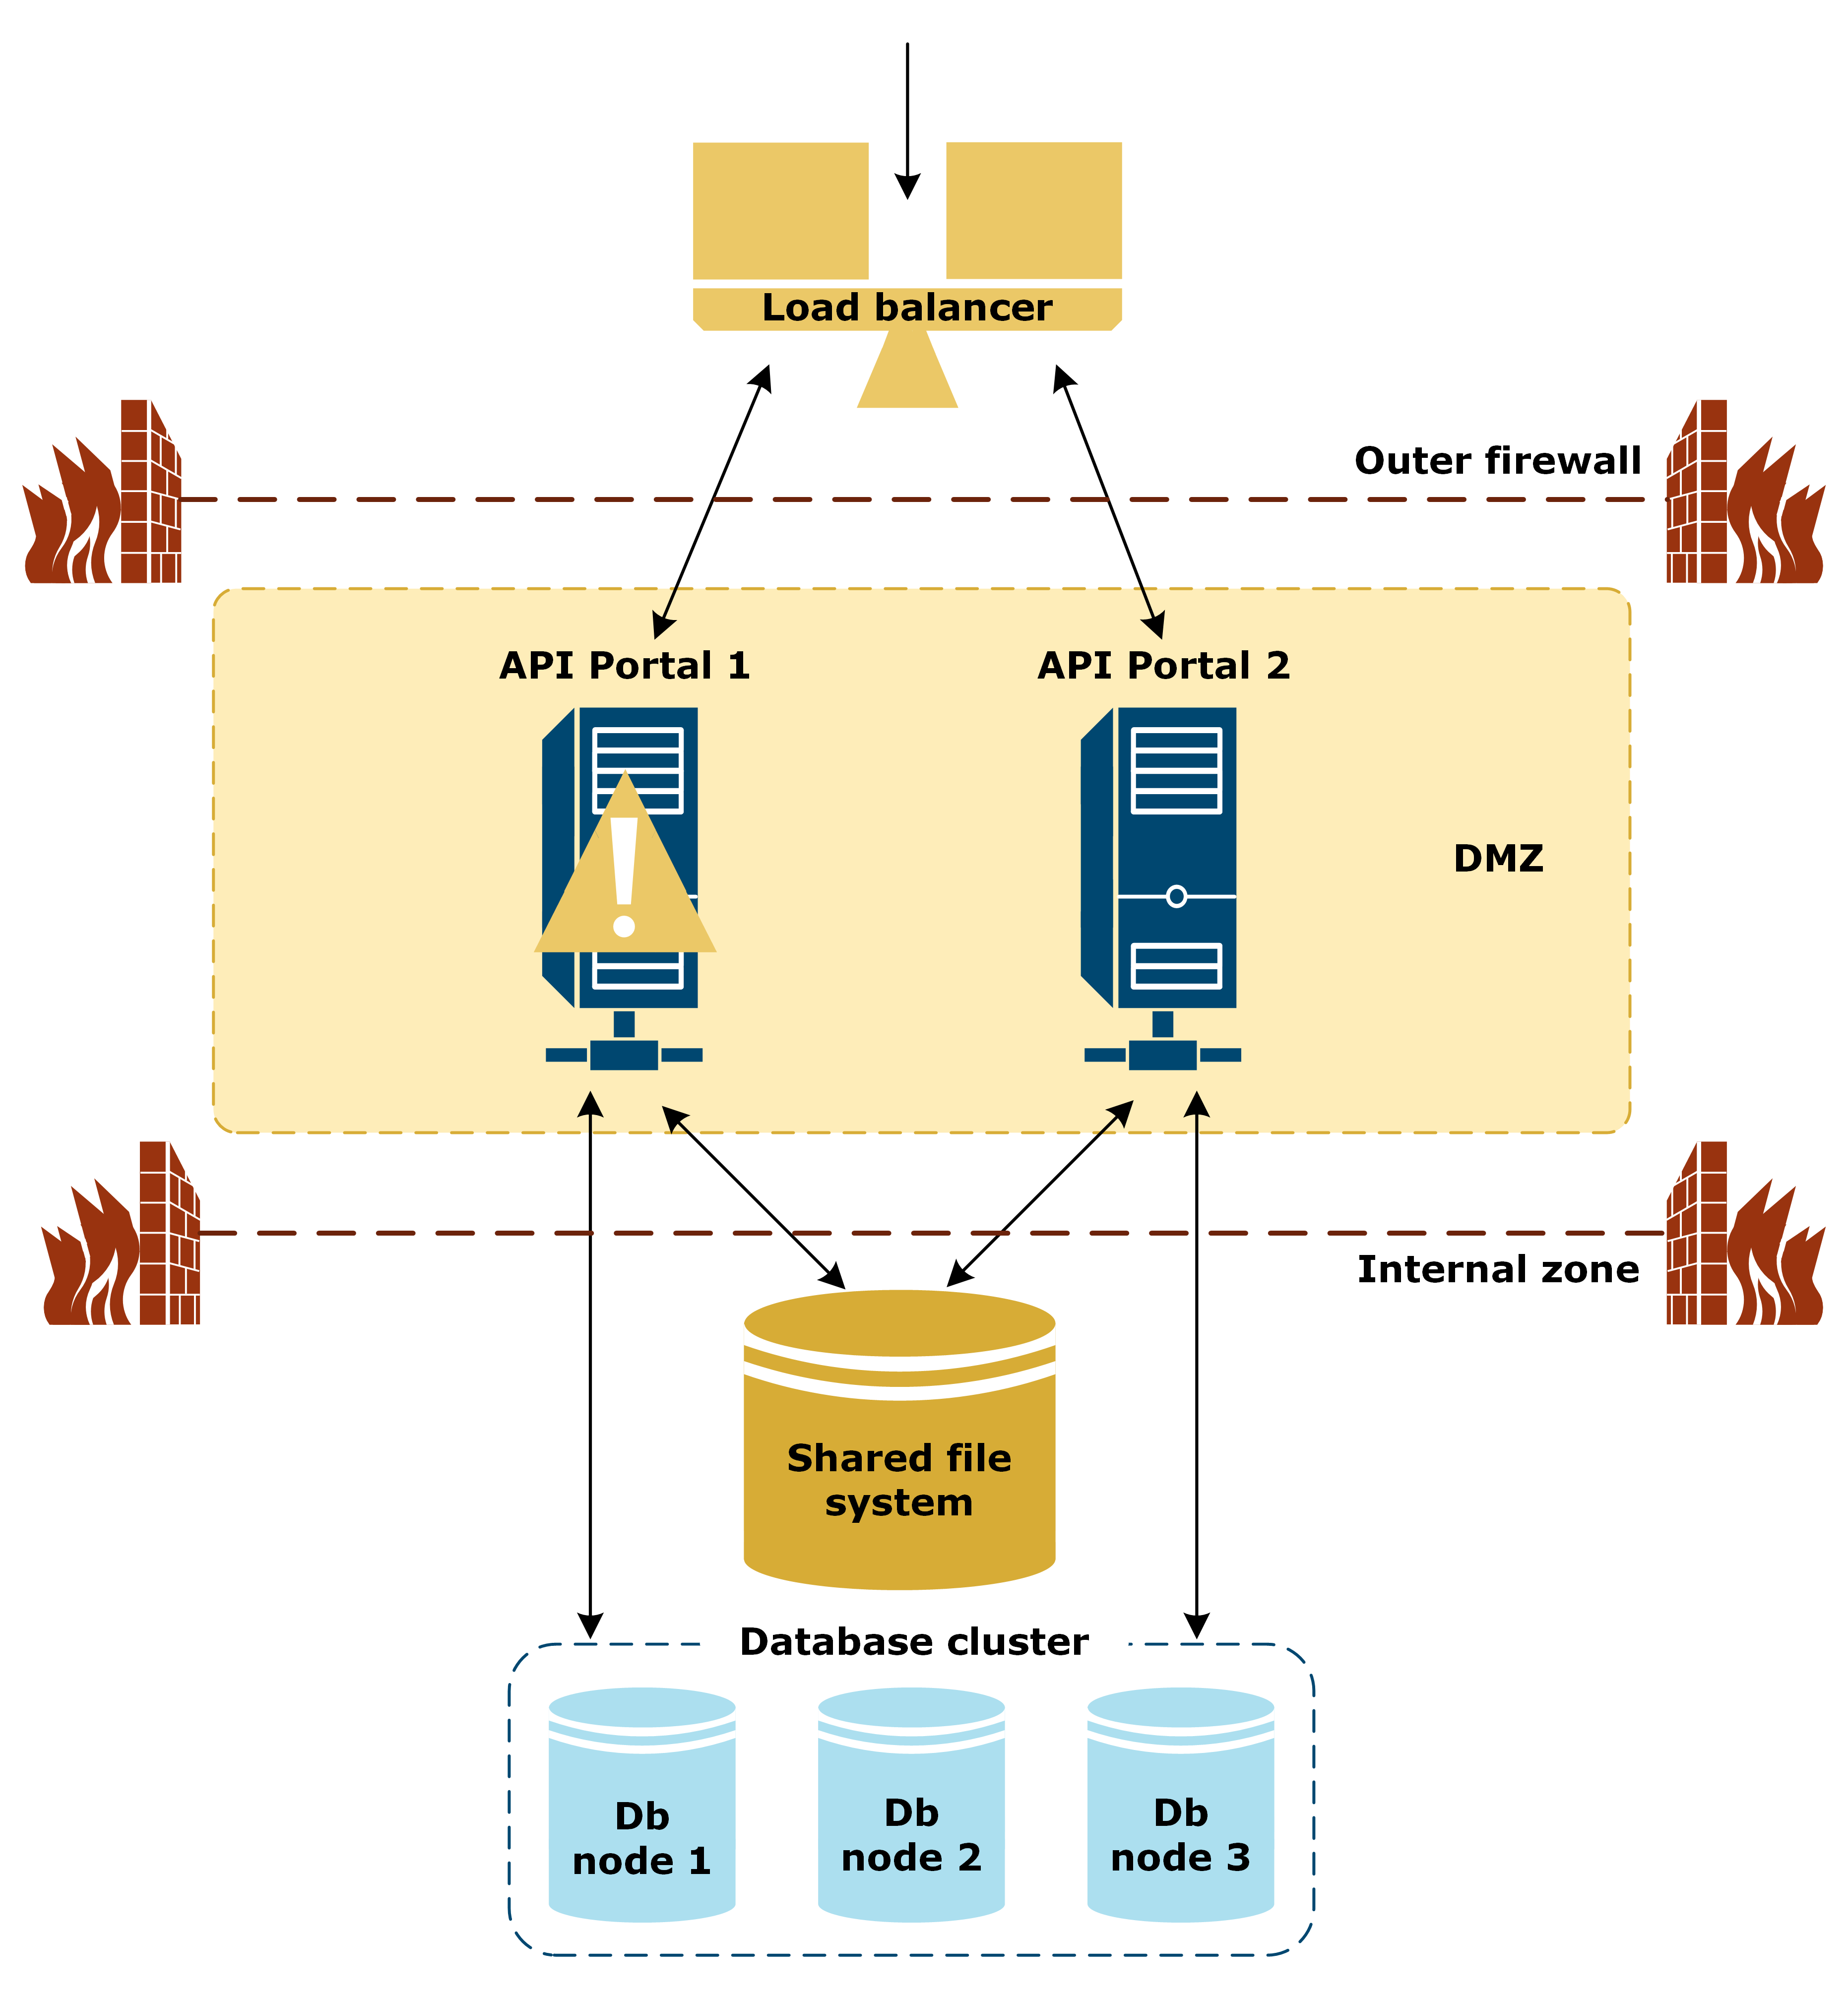 Illustration of APIPortal HA configuration with one instance down.